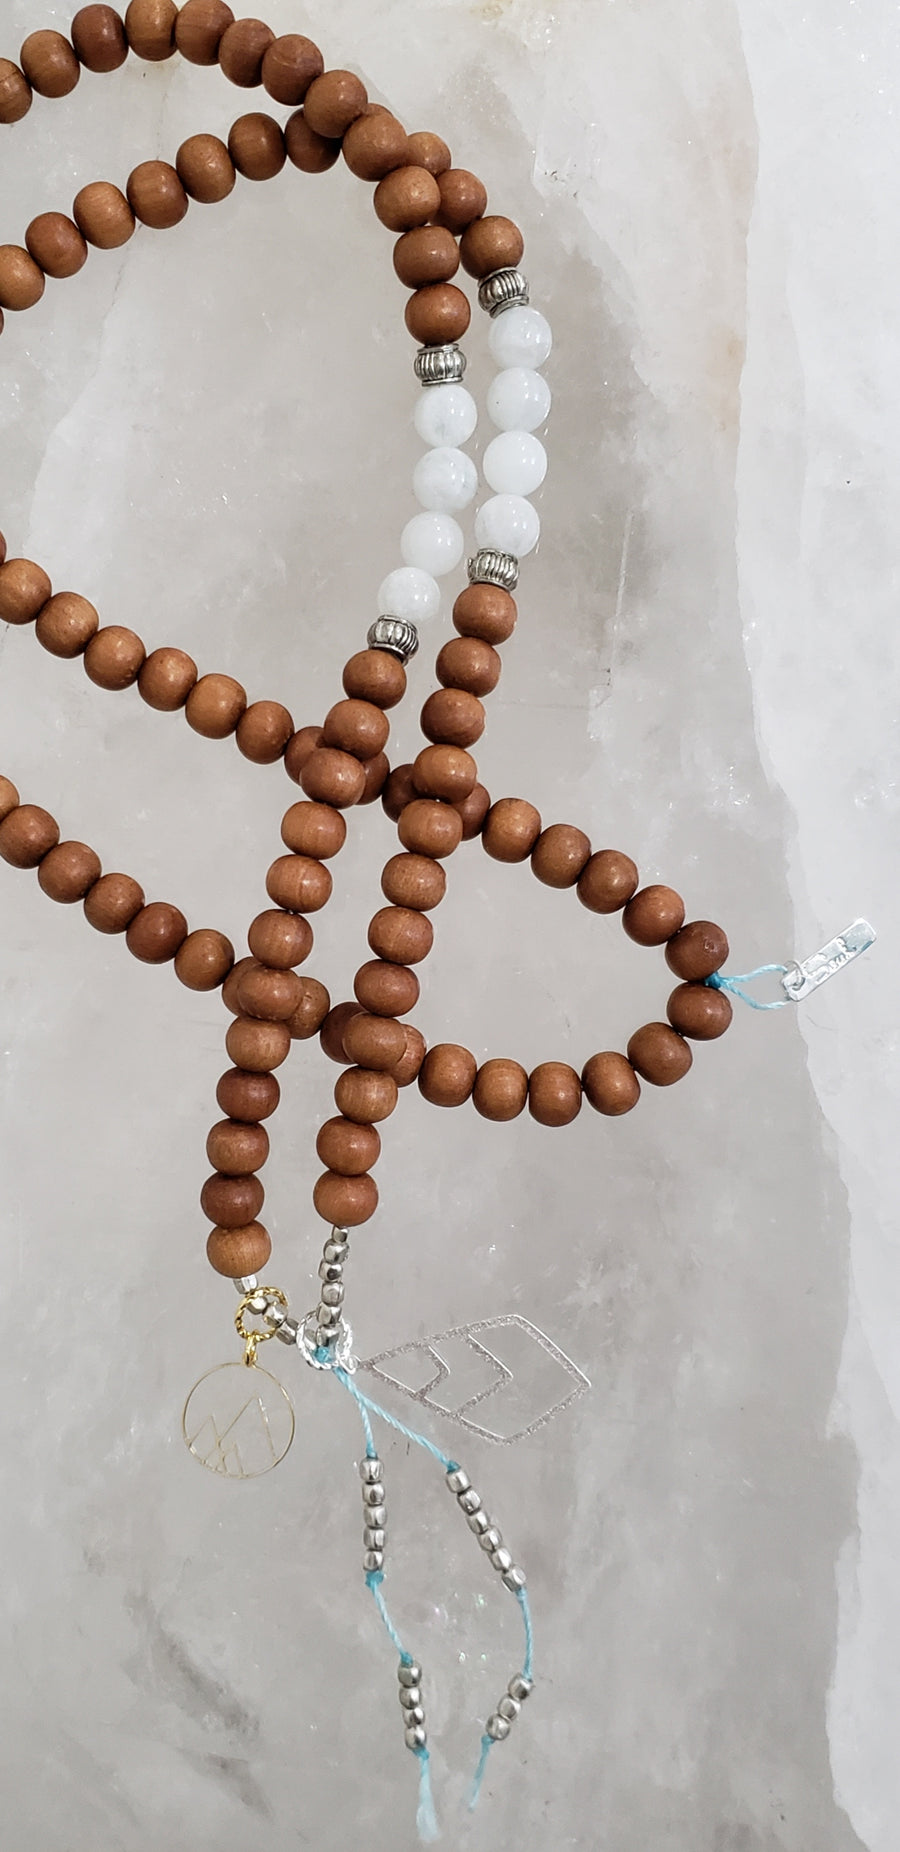 Tranquility Mala with Silver Accents